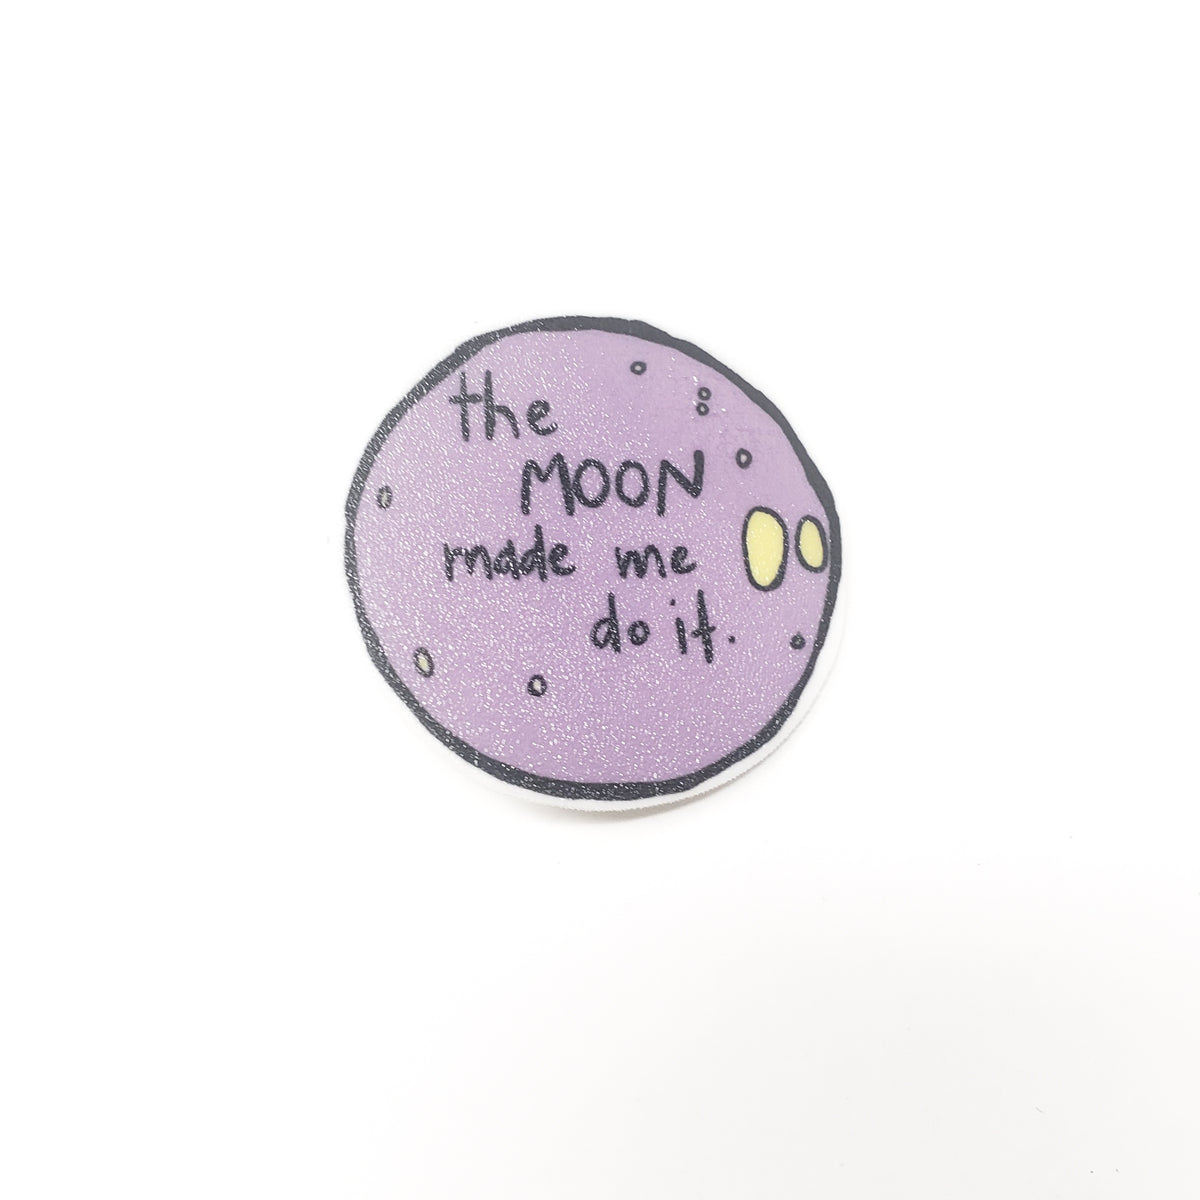 The Moon Made Me Do It Pin and Magnet